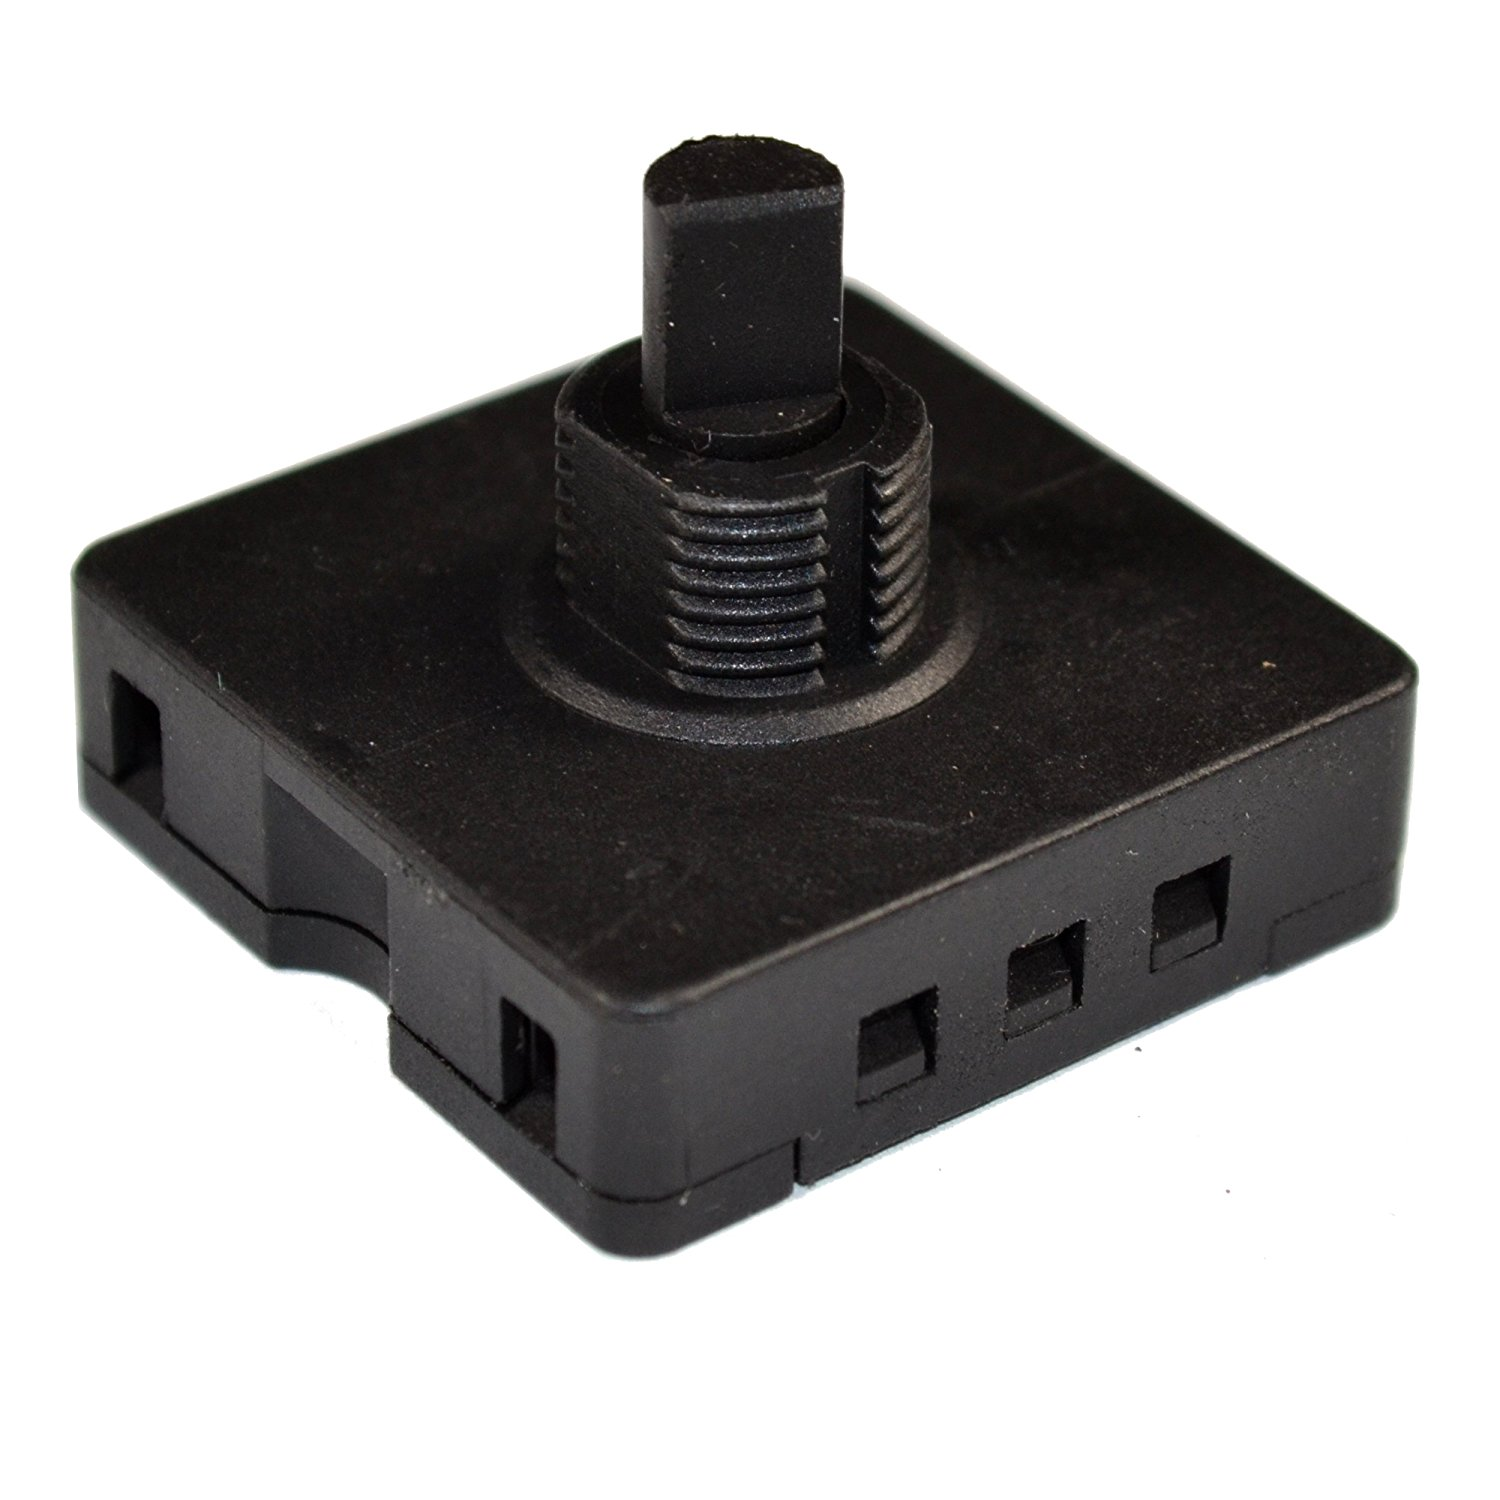 4-position 3-speed Fan Selector Rotary Switch Governor With Knob 13amp 120v-250v Home Appliance Parts